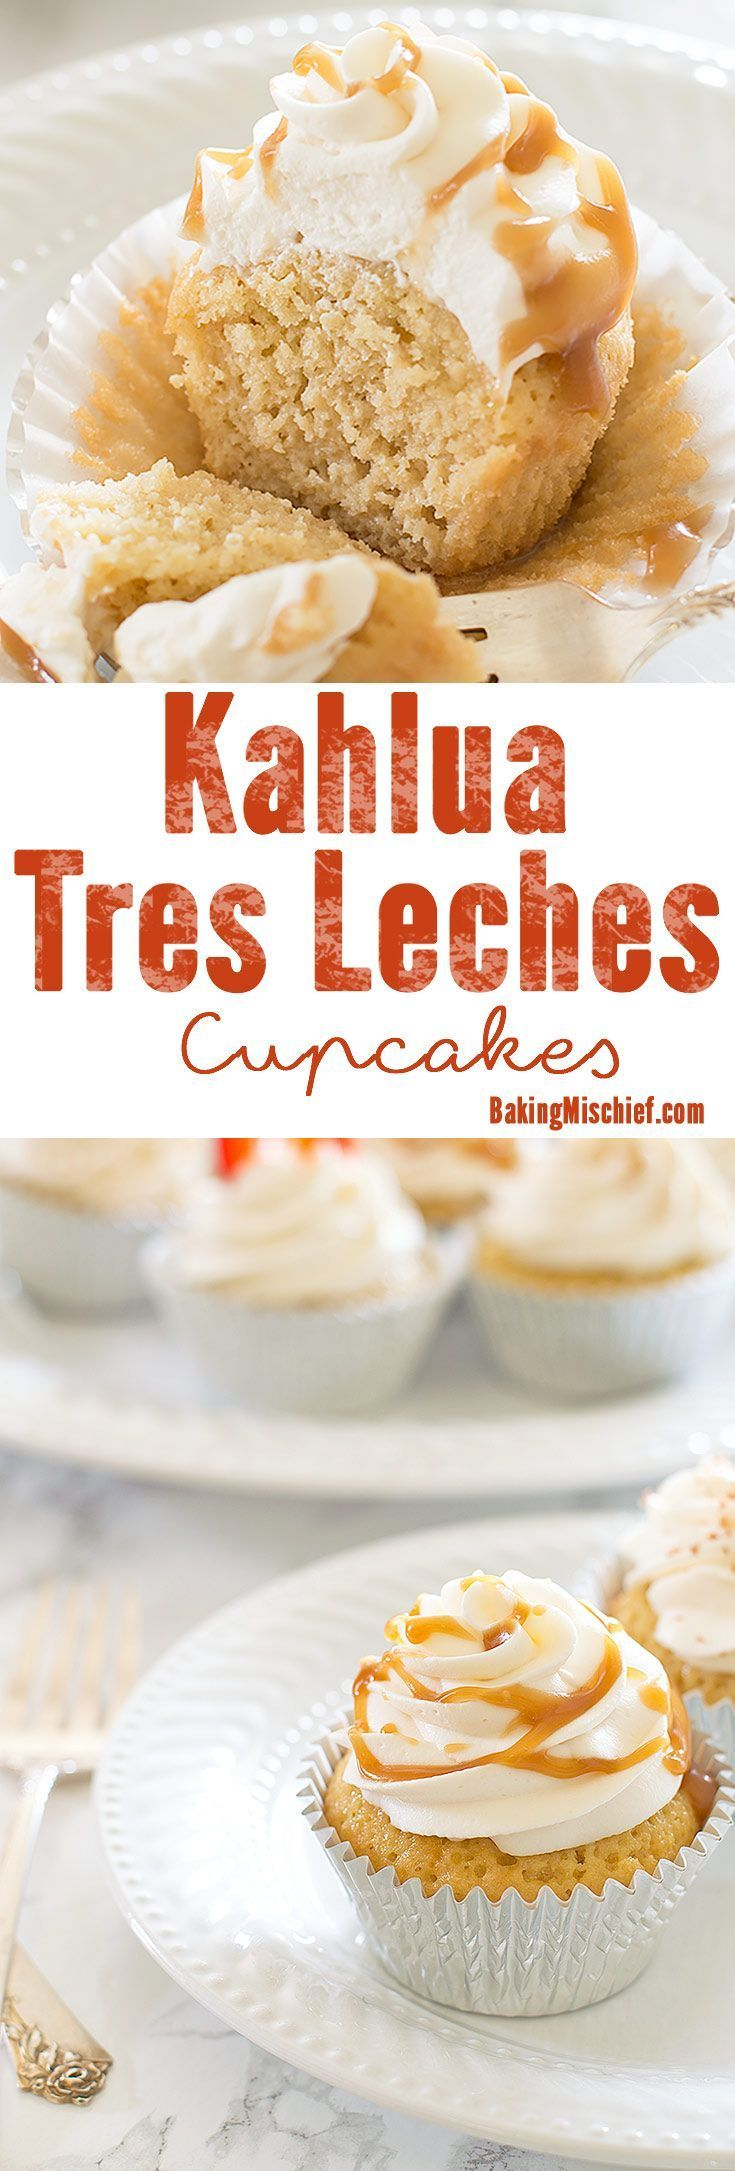 Classic Tres Leches cupcakes with a boozy Kahlua twist. An easy and delicious recipe just in time for Cinco de Mayo. Recipe includes nutritional information plus small-batch and non-alcoholic instructions. From http://BakingMischief.com